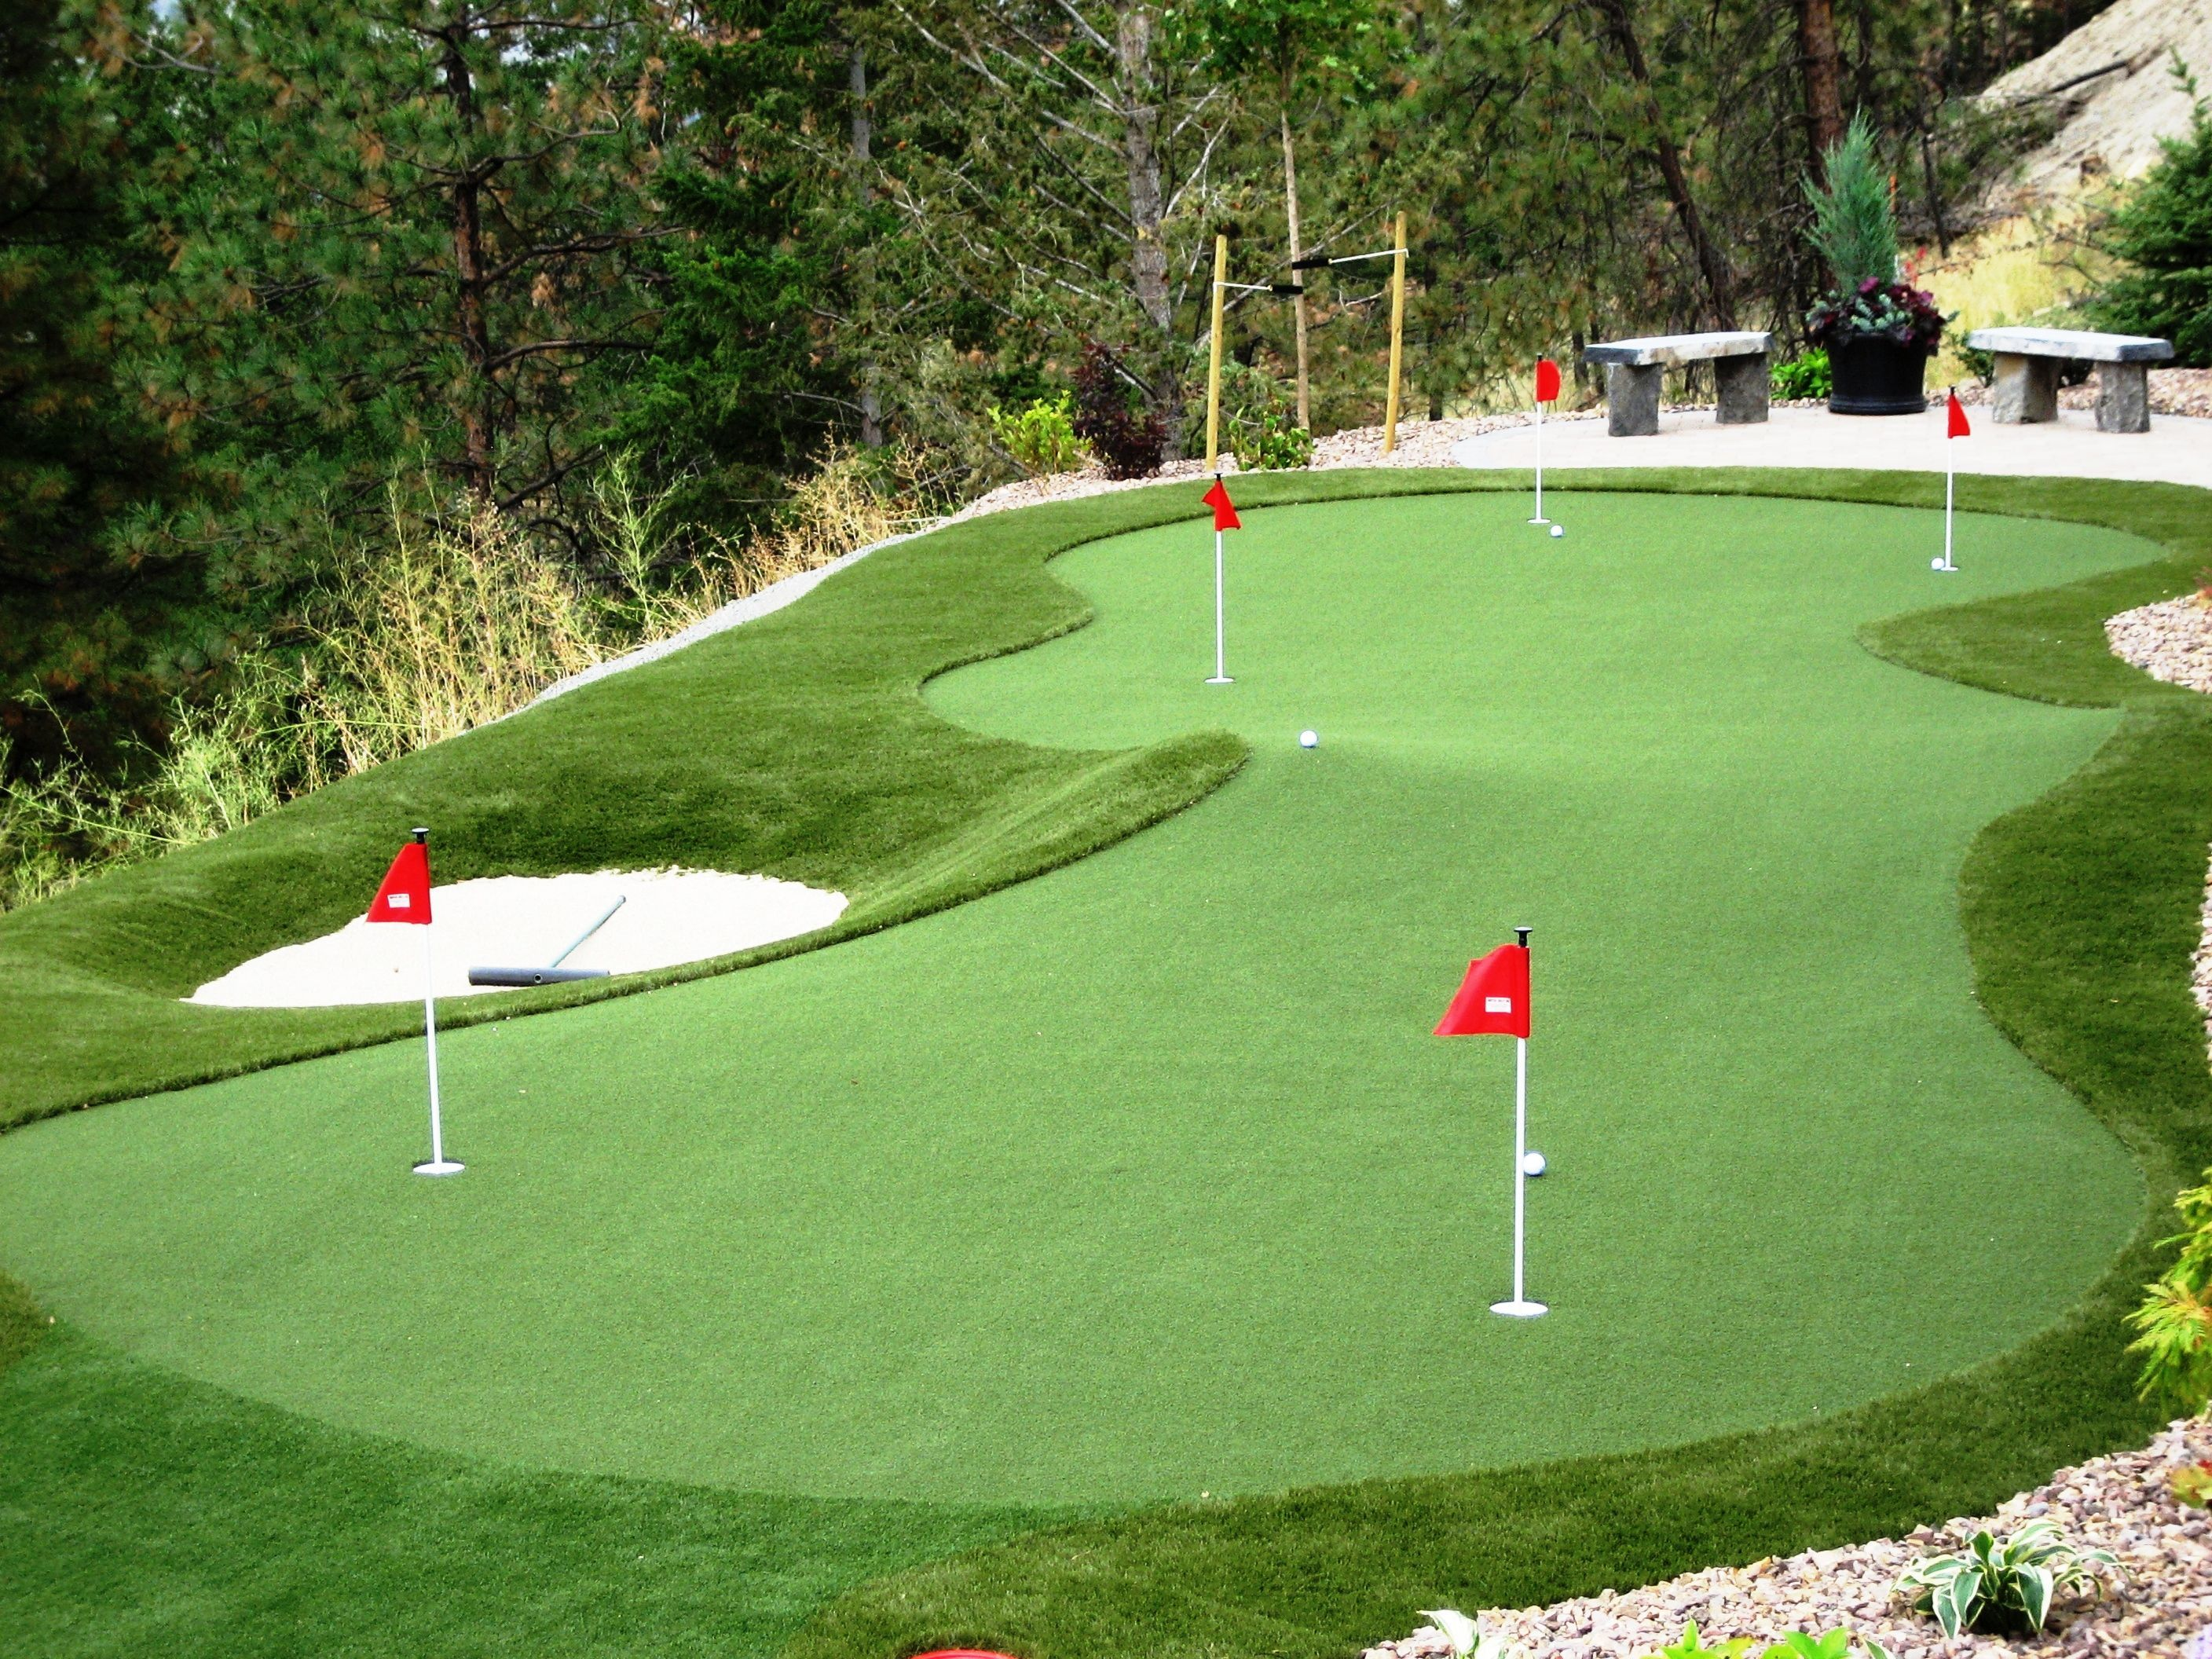 Practise your putts in your own back yard